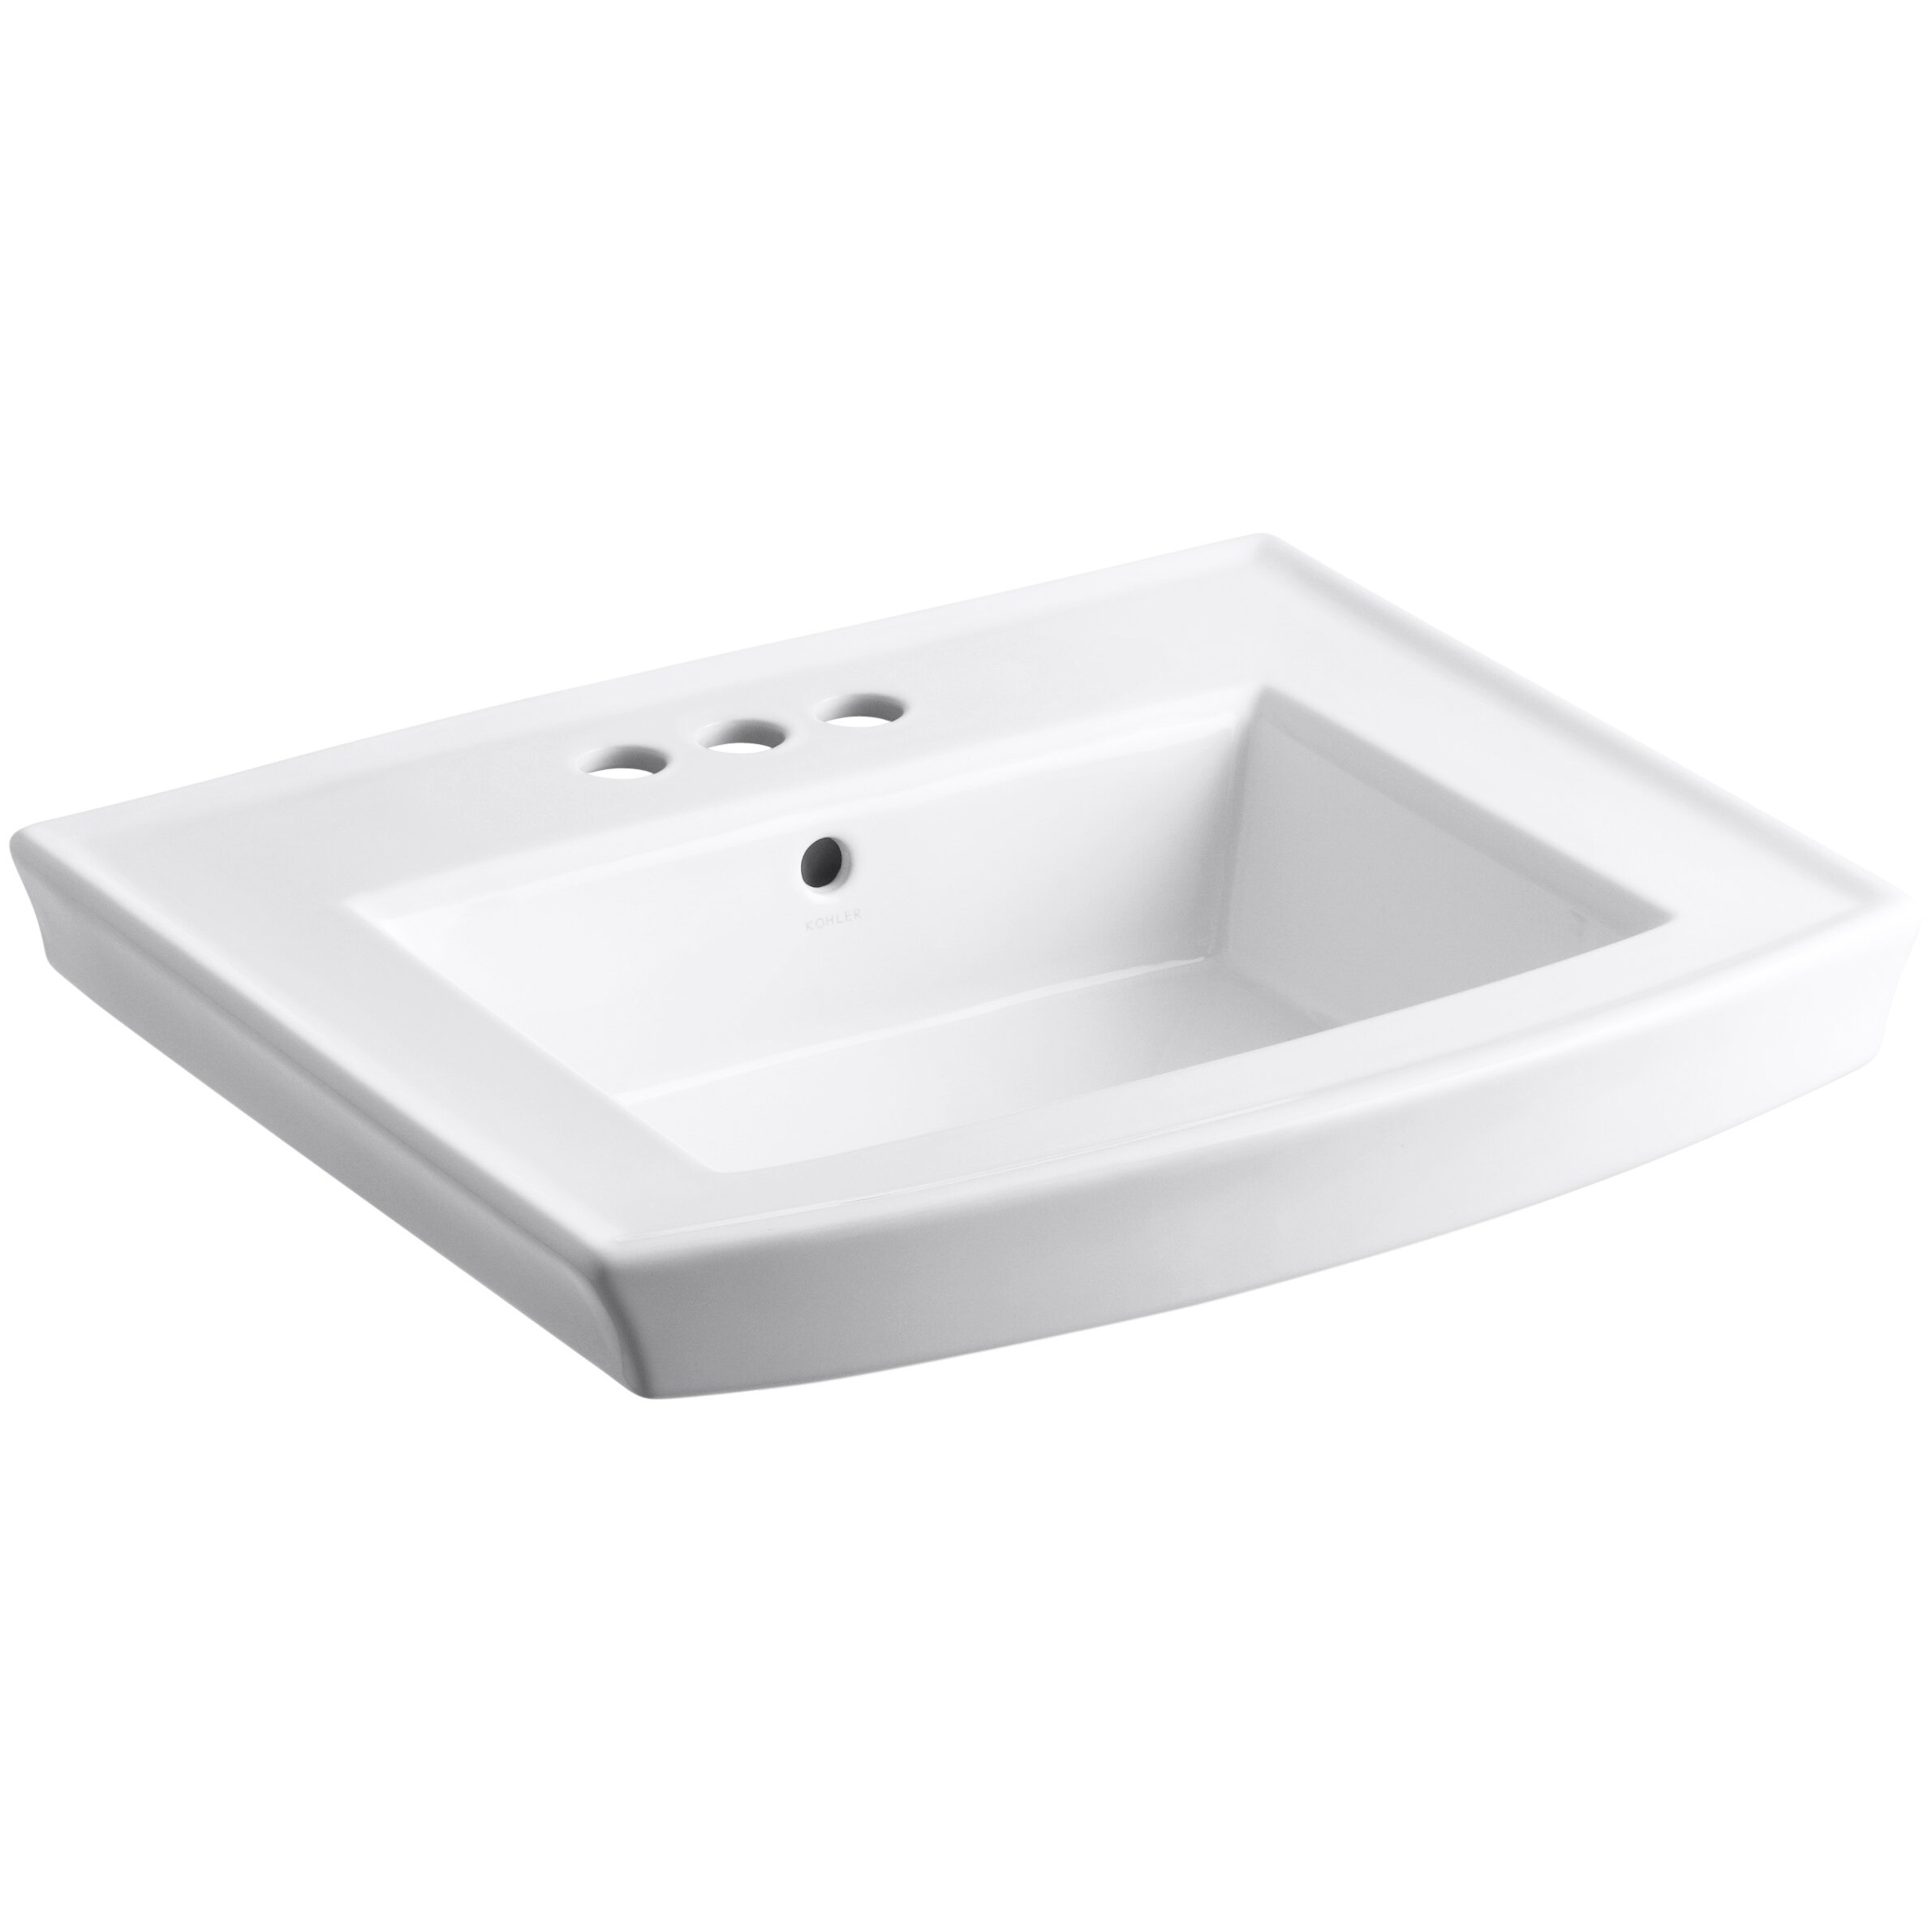 Kohler Pedestal : Kohler Archer Pedestal Bathroom Sink & Reviews Wayfair